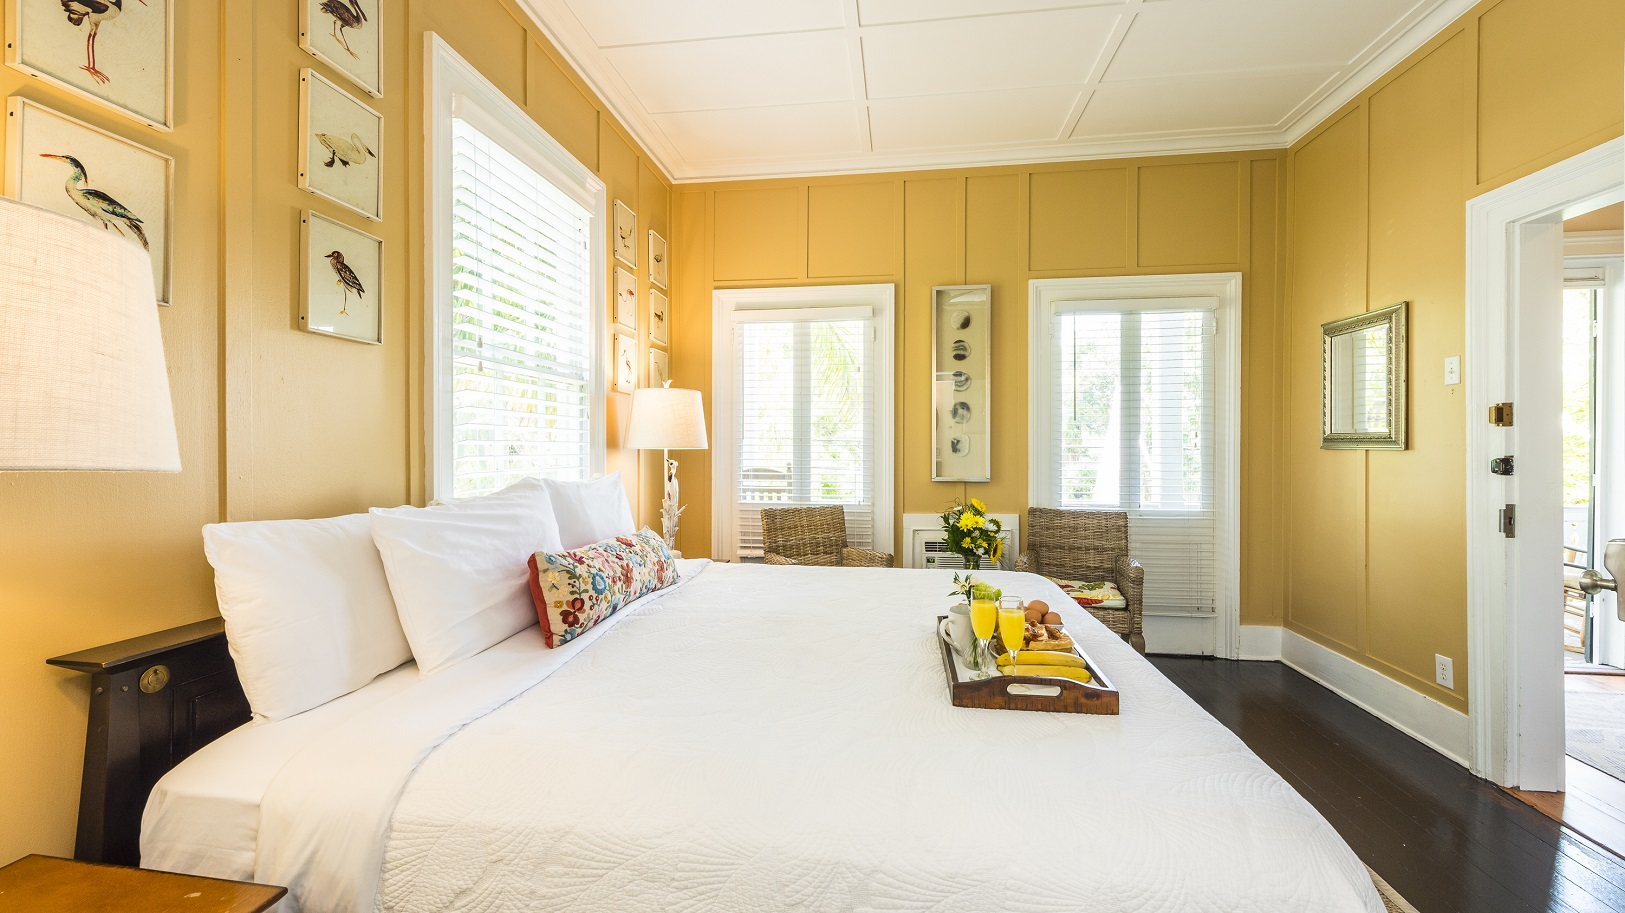 Key West Vacation Guest House - King William Room at Old Town Manor